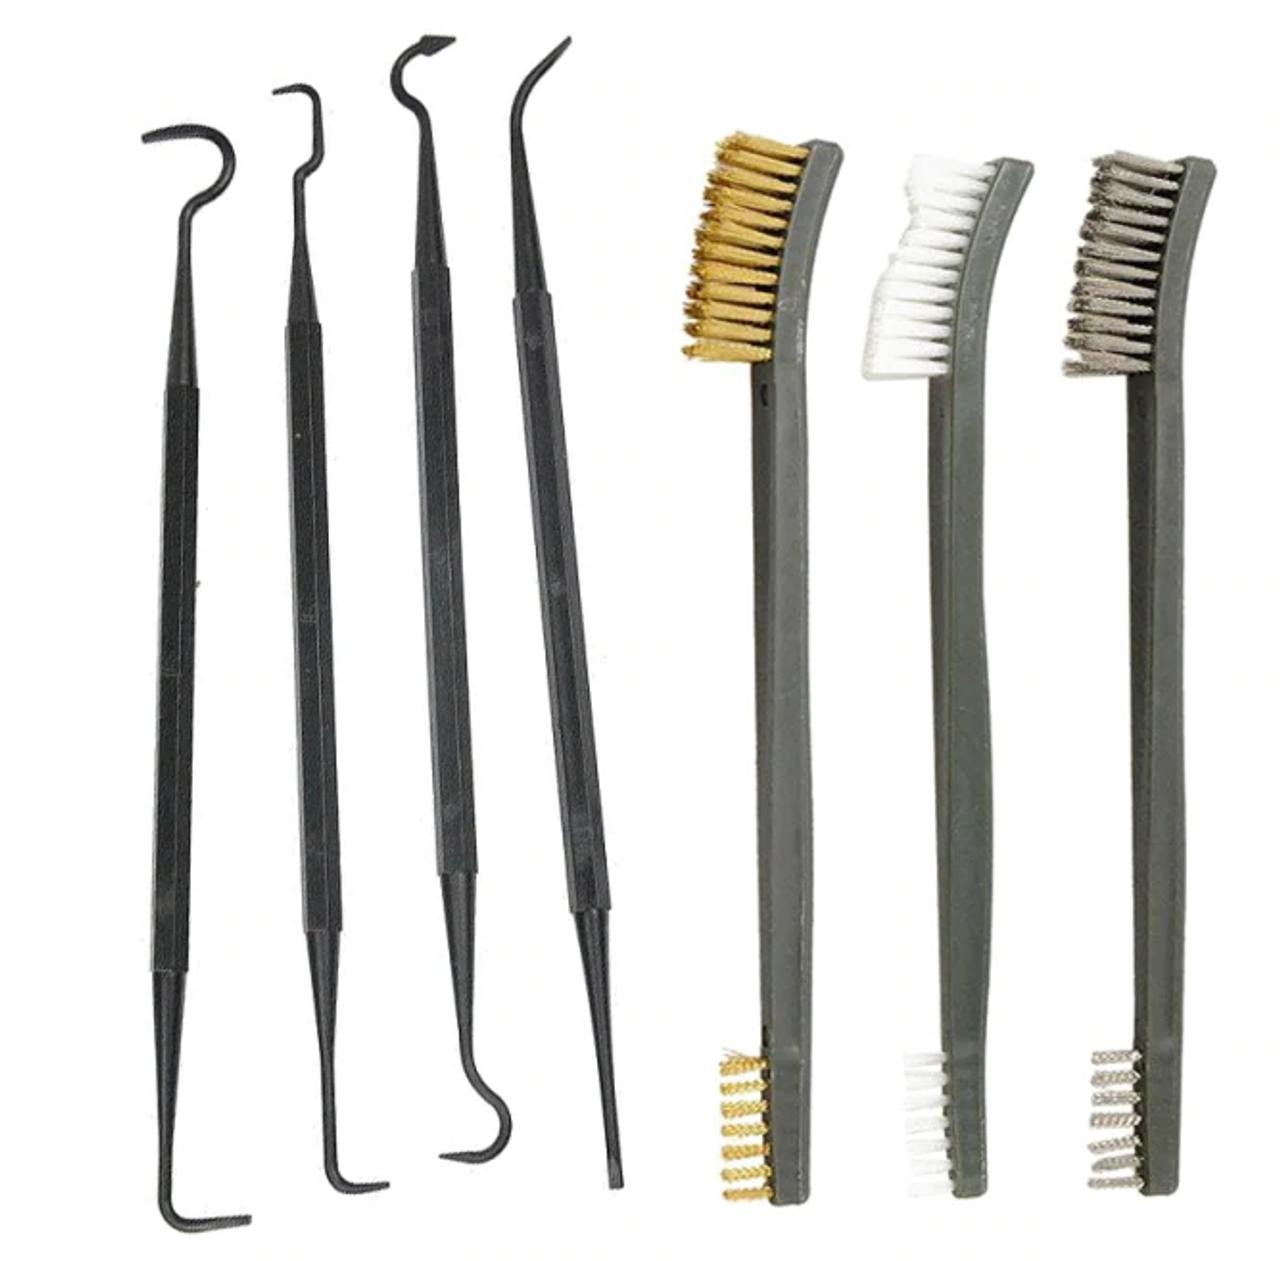 3pc Steel Wire Brush + 4pc Nylon Pick Set for Gun Cleaning